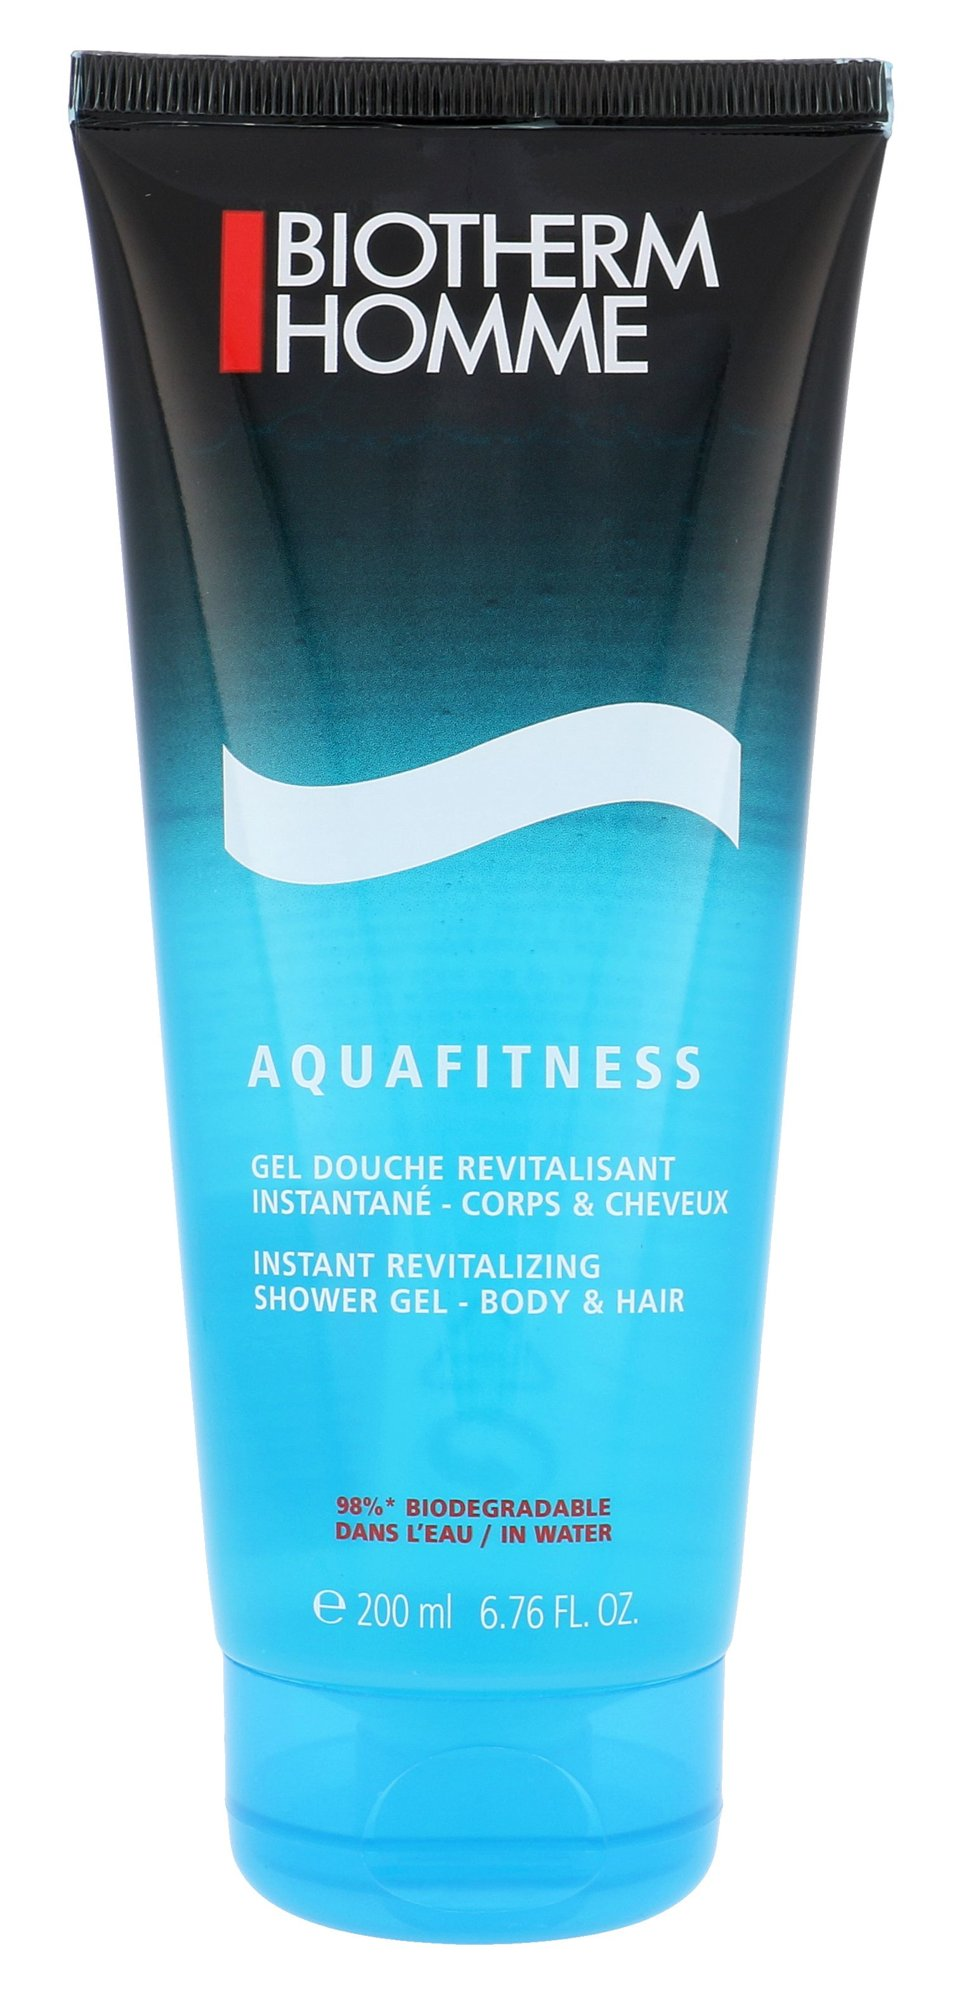 Biotherm Homme Aquafitness Cosmetic 200ml